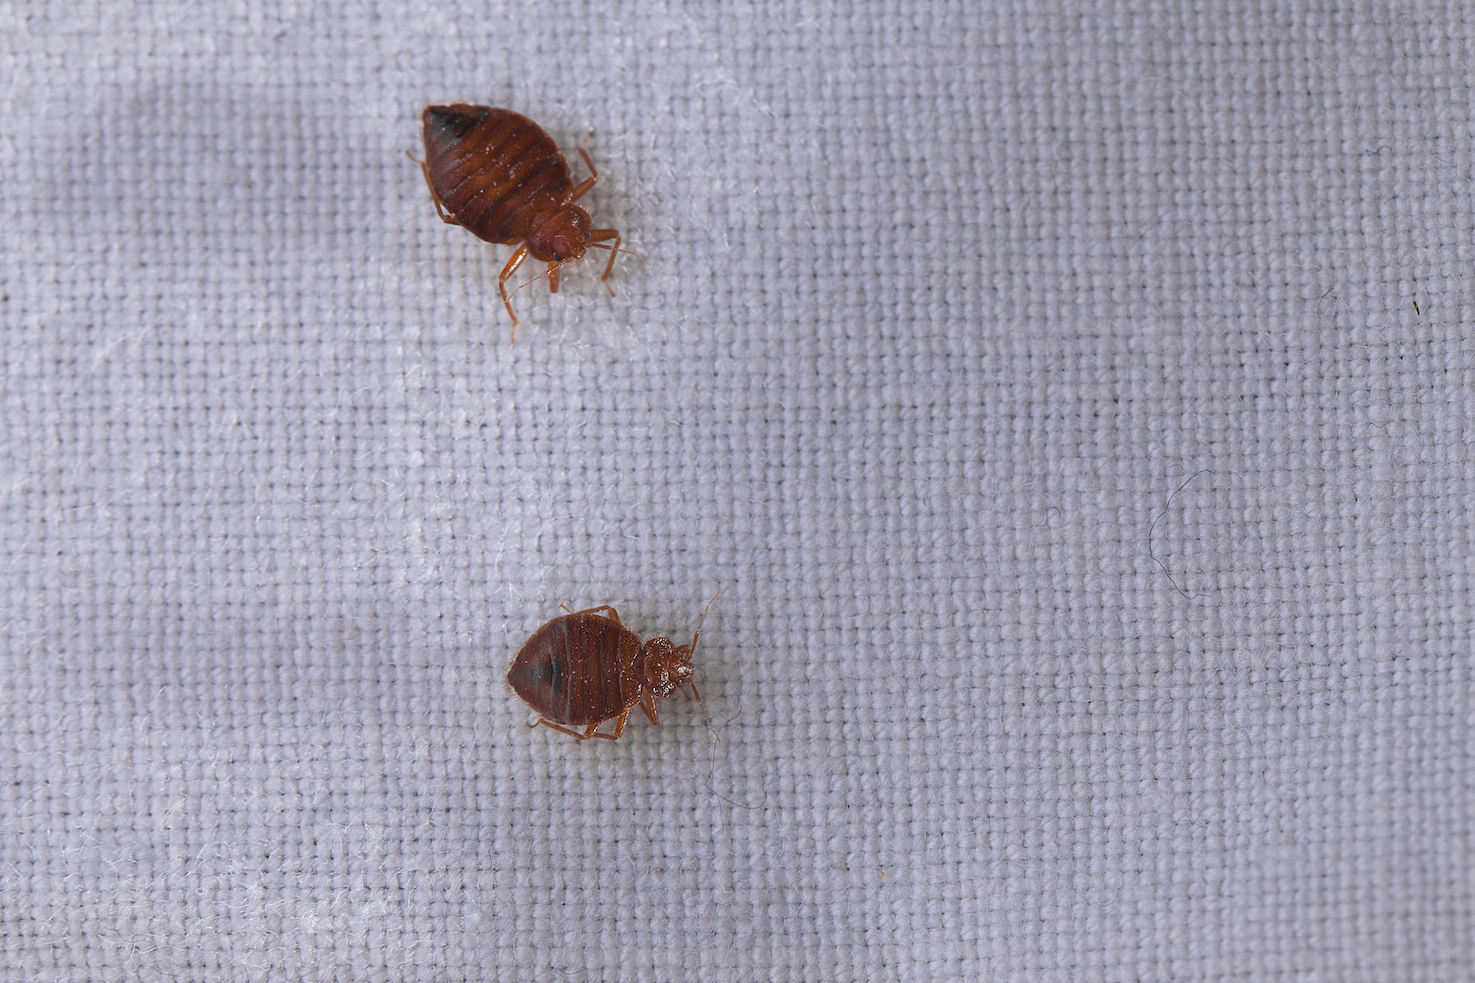 How To Eradicate Bed Bugs